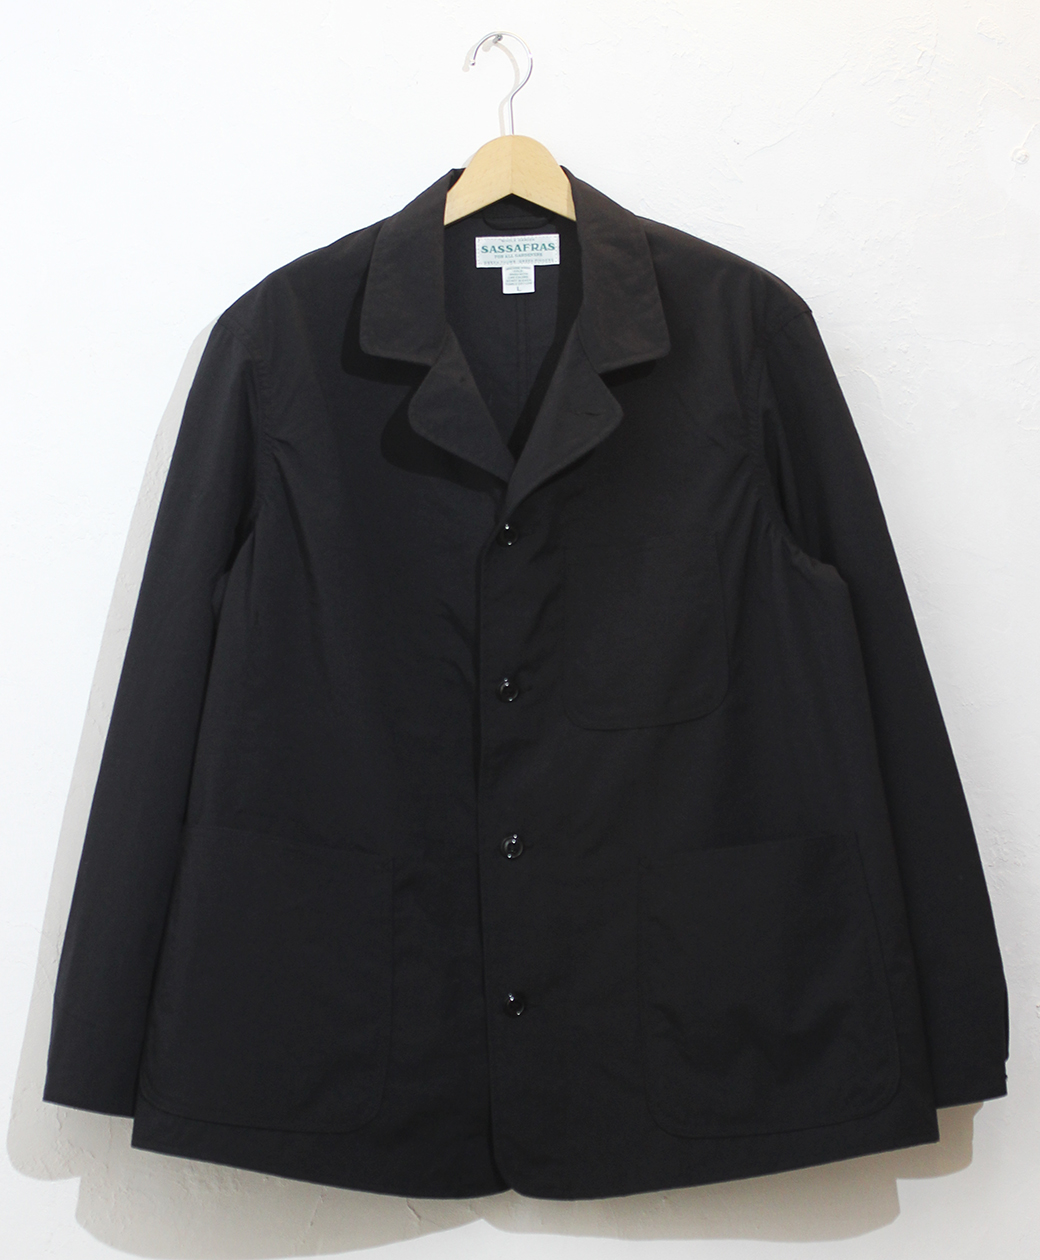 SASSAFRAS Sprayer Jacket(Nylon Oxford)